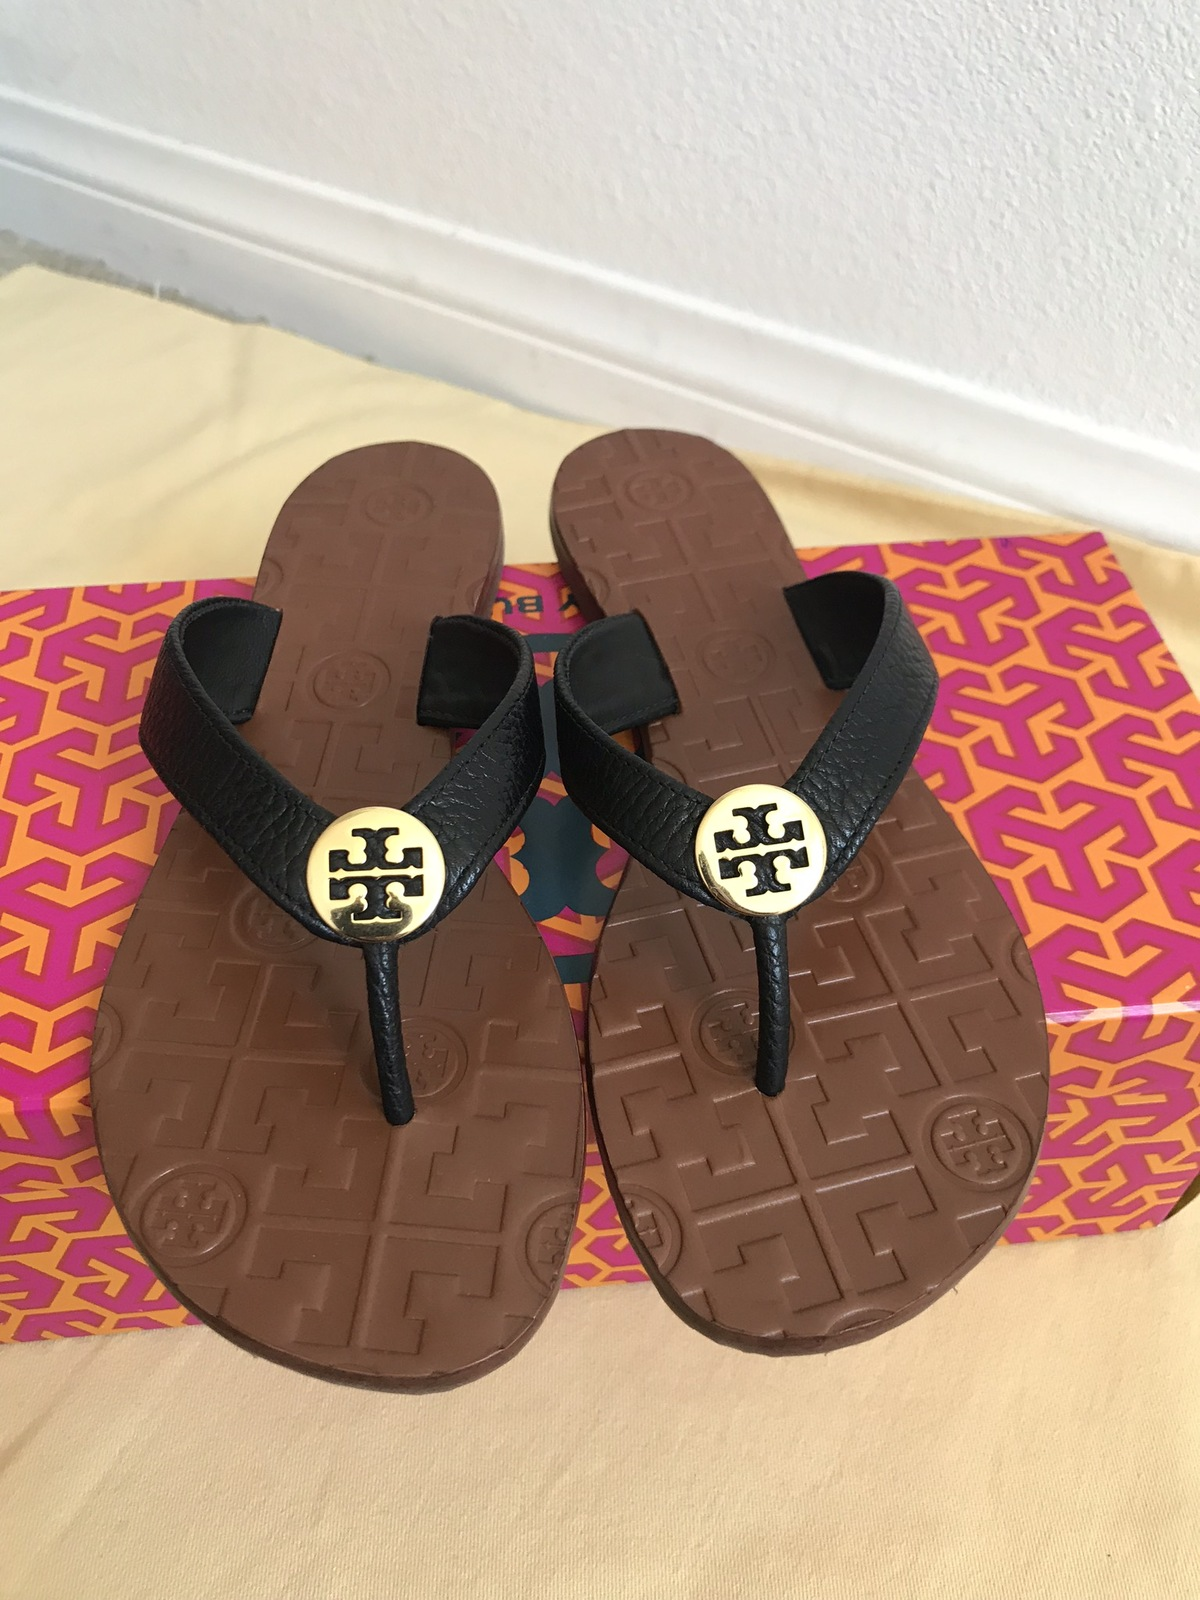 a2a228369 Size 7M Nib Tory Burch Black  Gold Thora and similar items. Img 1453